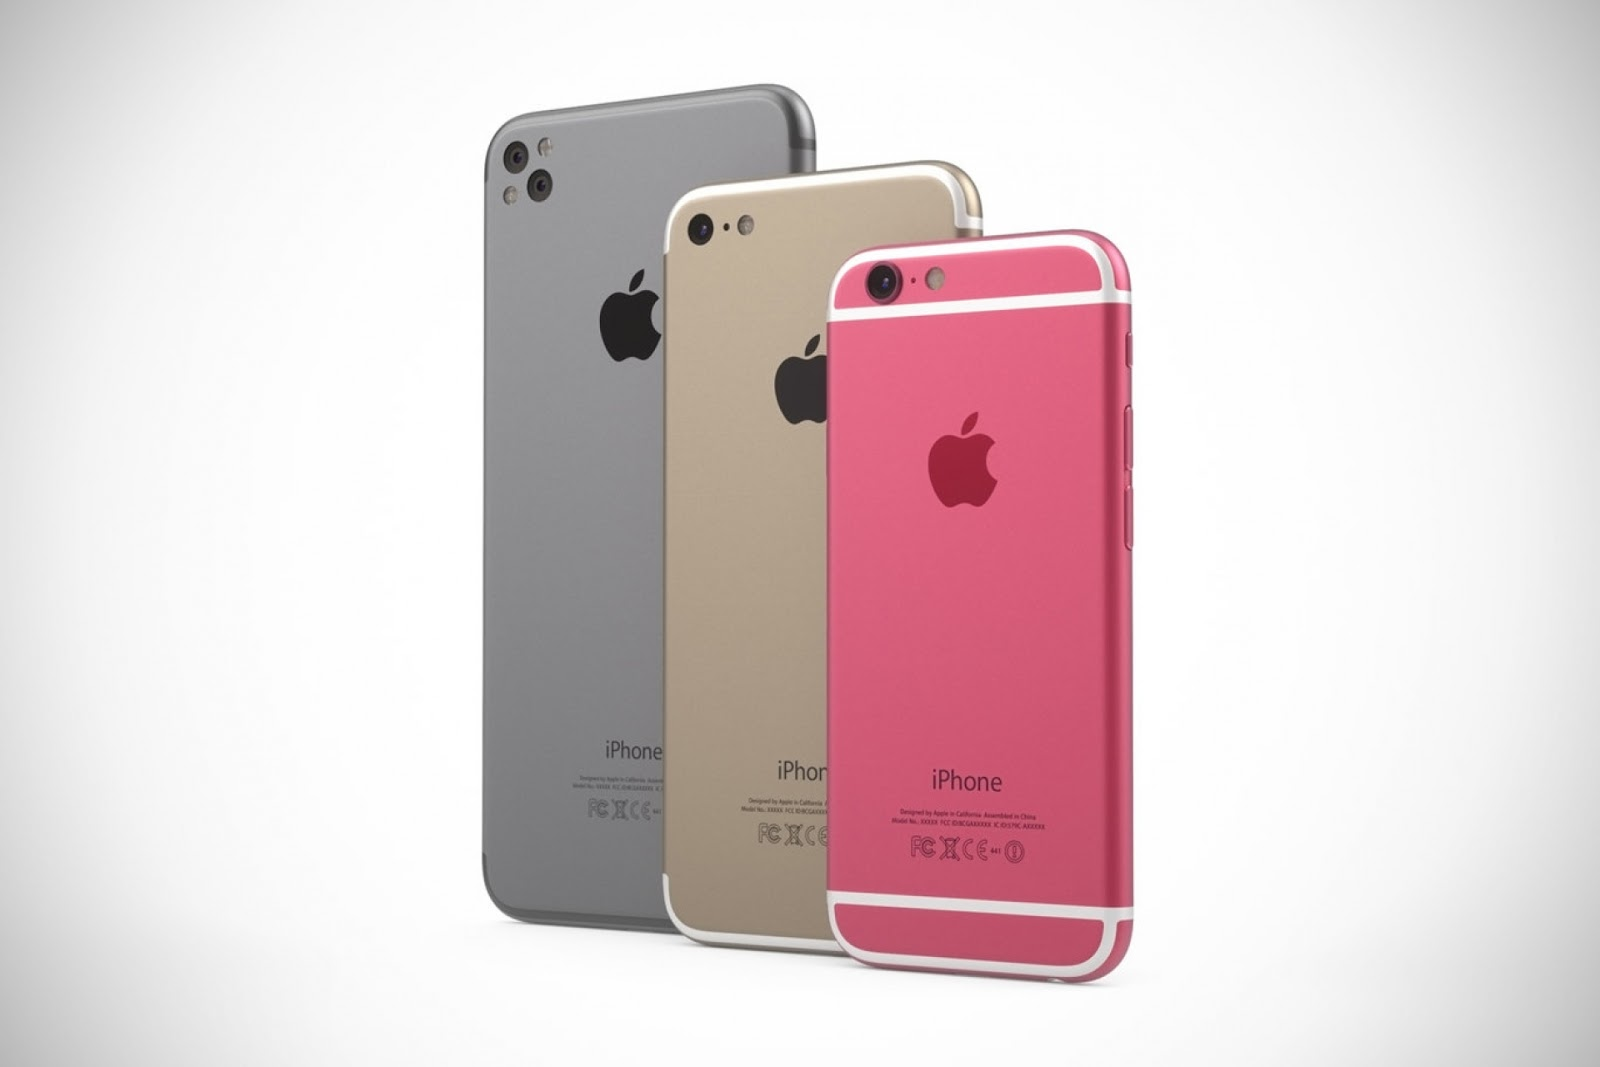 concept video dual camera iphone 7 iphone 7 plus and pink iphone 5se with iphone 6 design. Black Bedroom Furniture Sets. Home Design Ideas